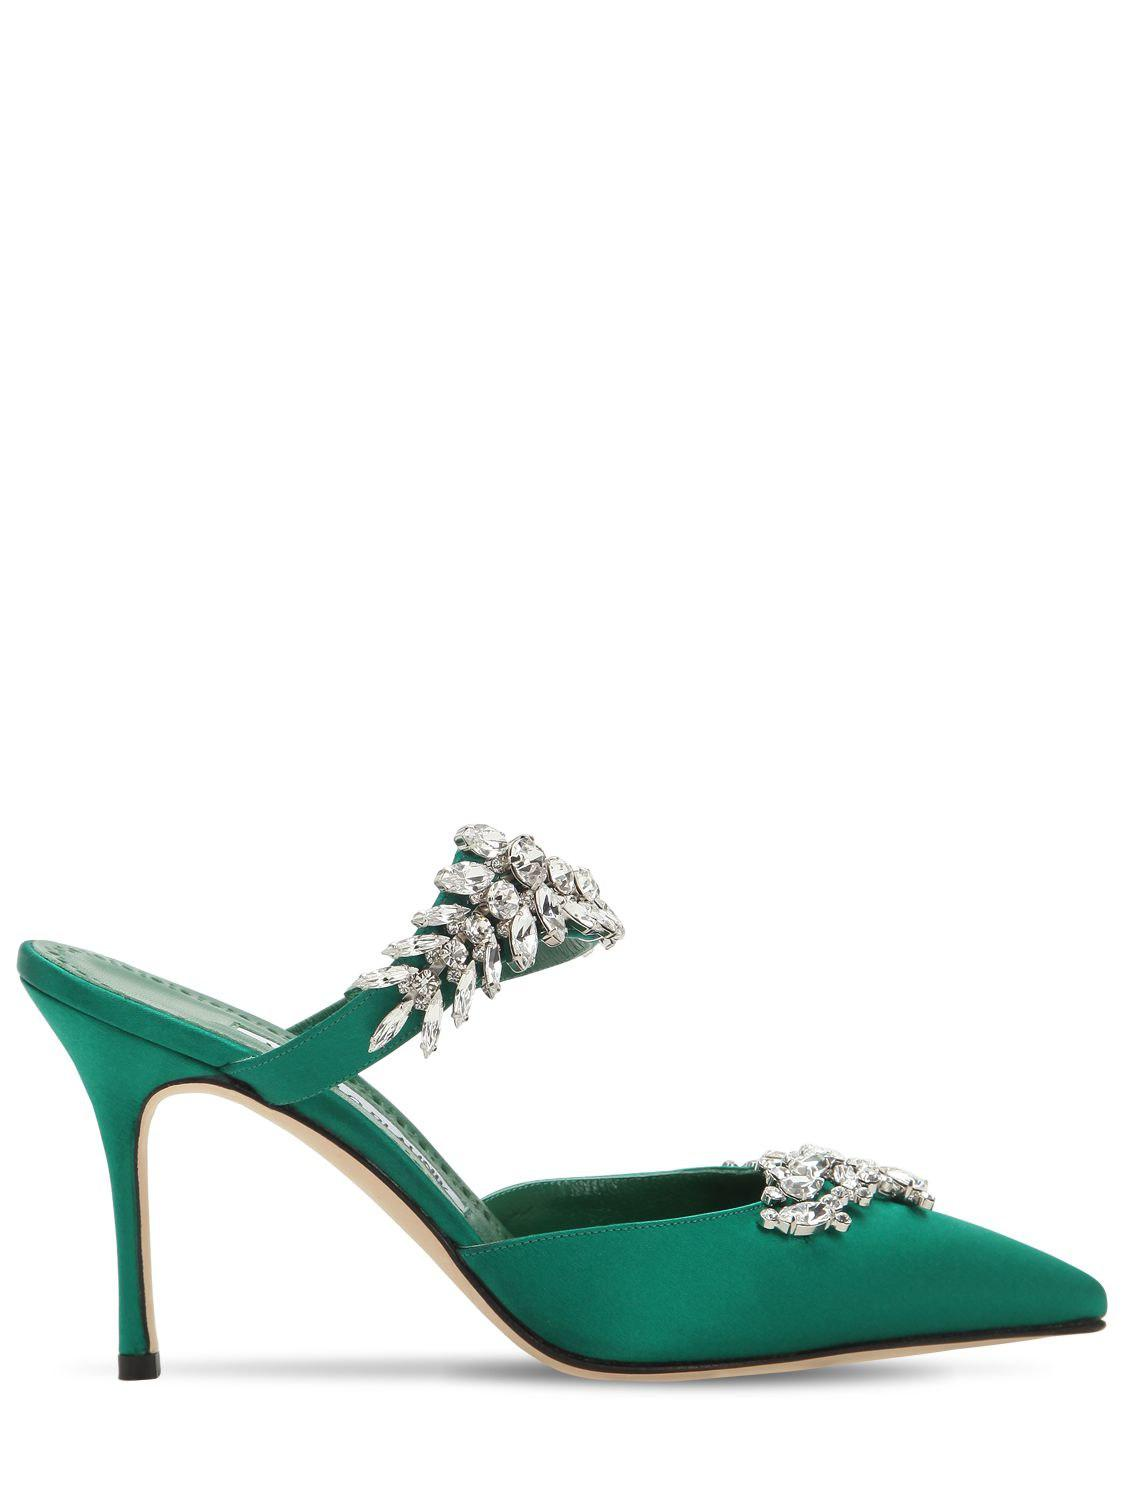 694175b1b29 Lyst - Manolo Blahnik Lurum 90 Emerald Satin Pumps in Green - Save 45%